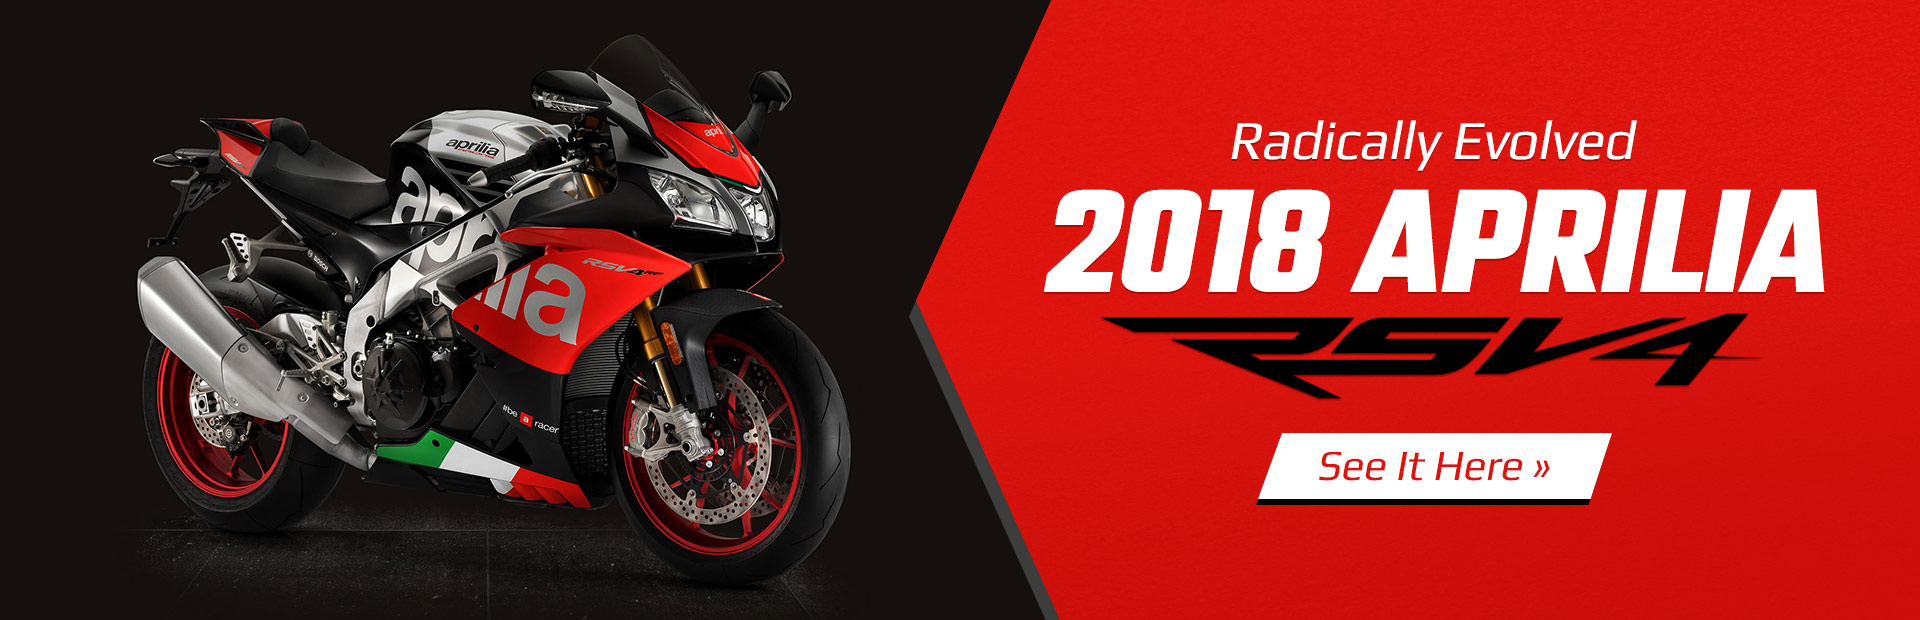 2018 Aprilia RSV4: Click here to view the model.